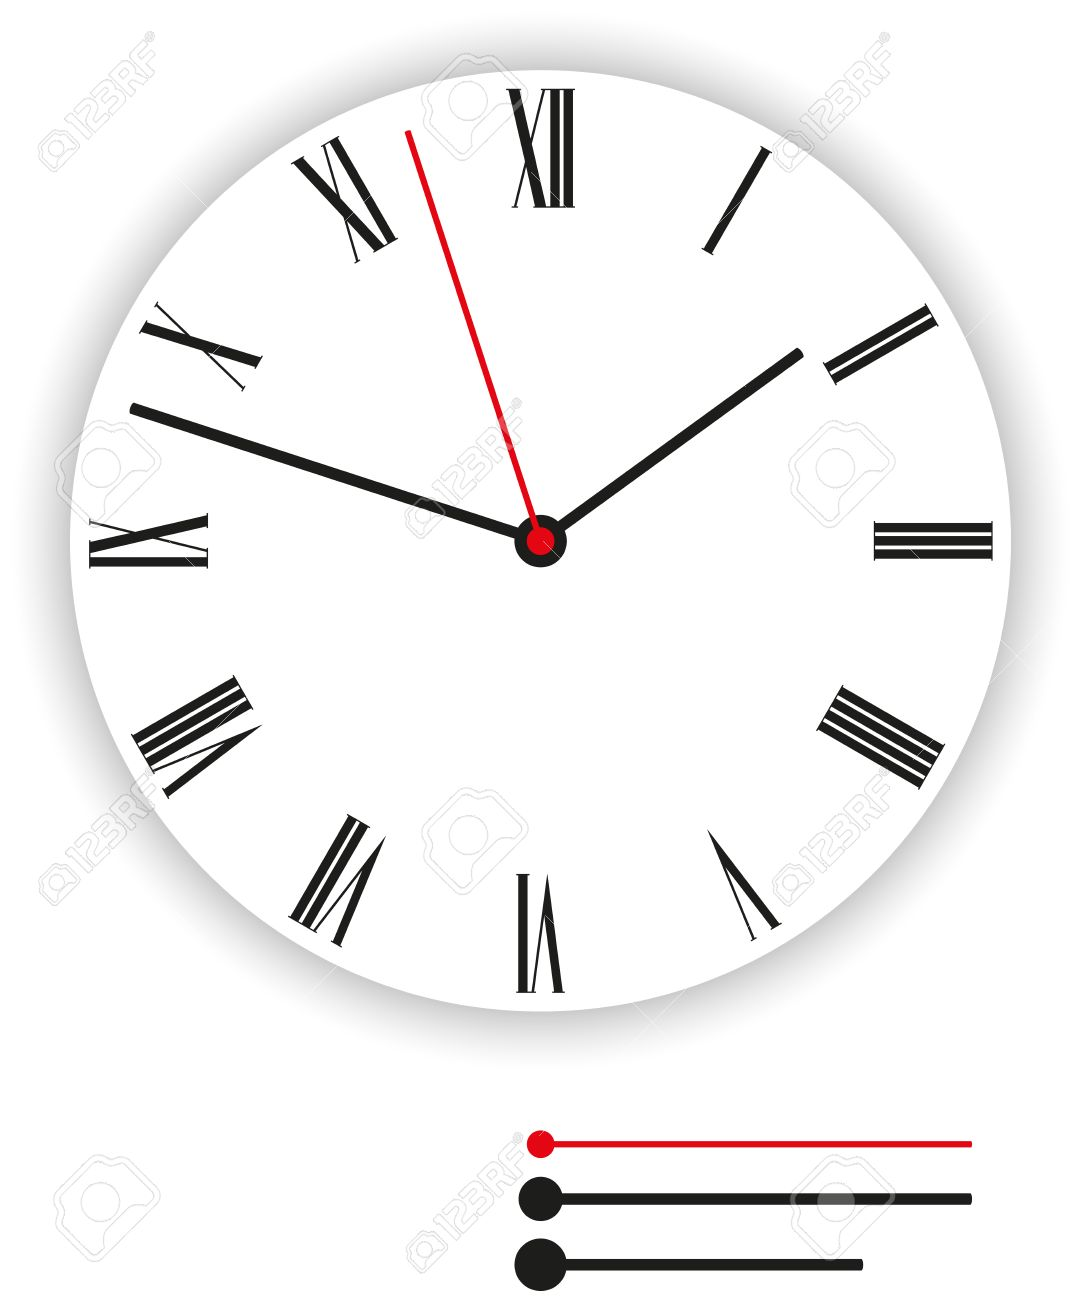 Clock Face Classic - Illustration of a classic clock face dial